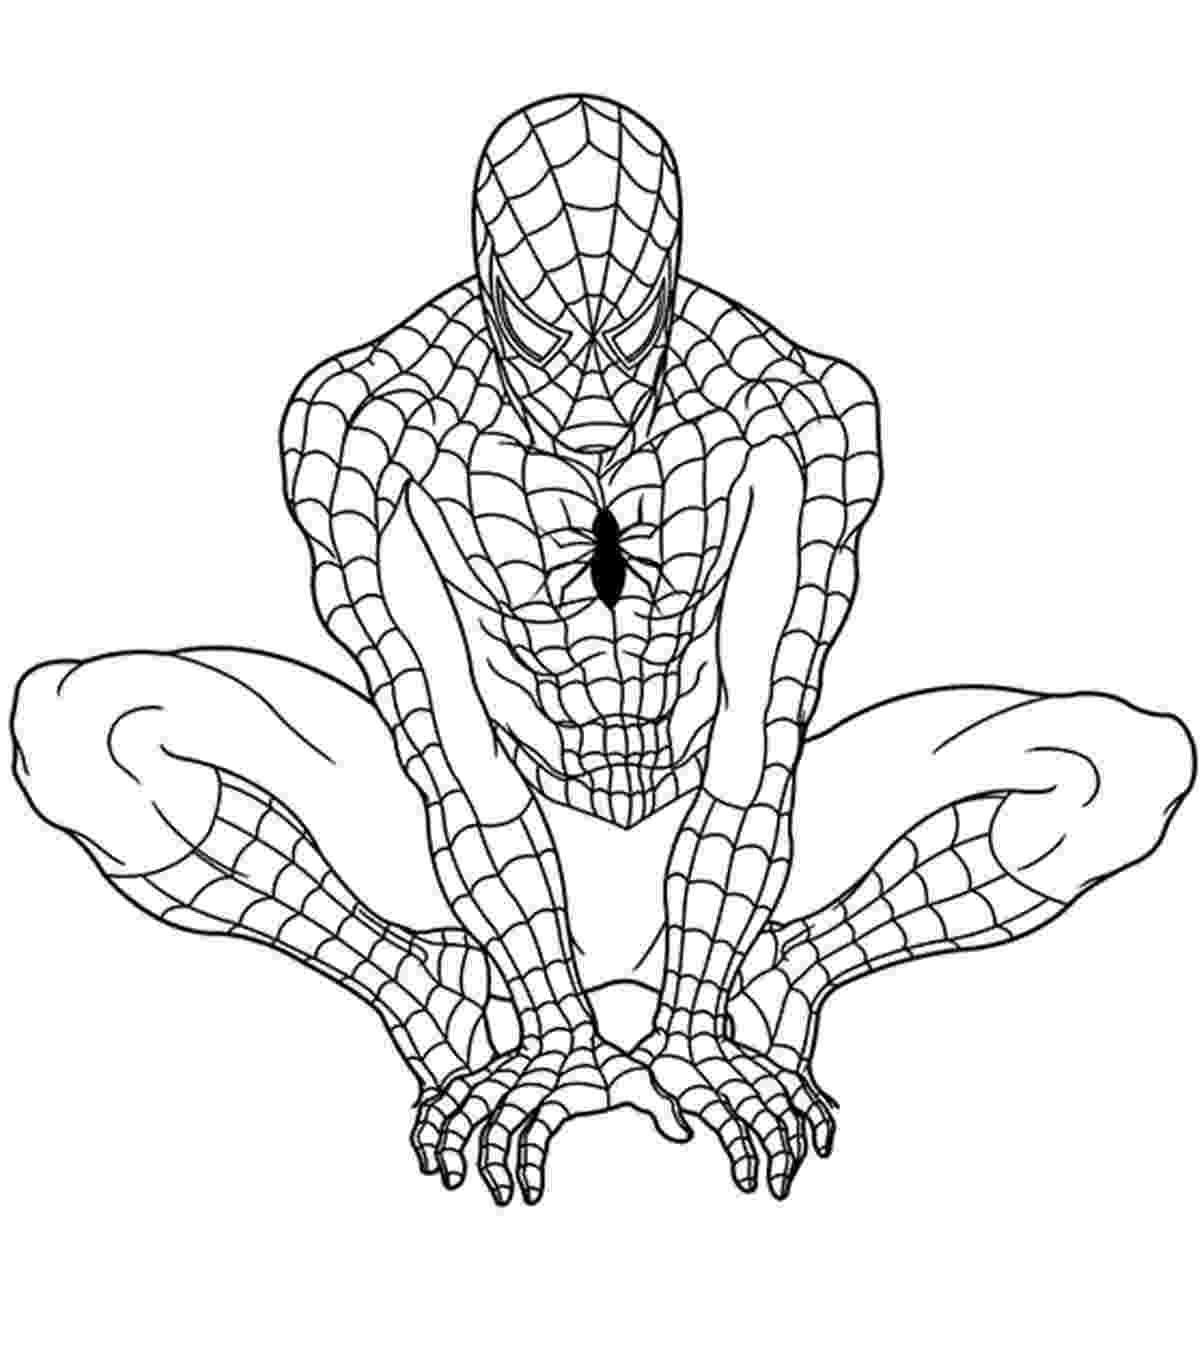 coloring pages superheroes dc superhero coloring pages download and print for free superheroes pages coloring